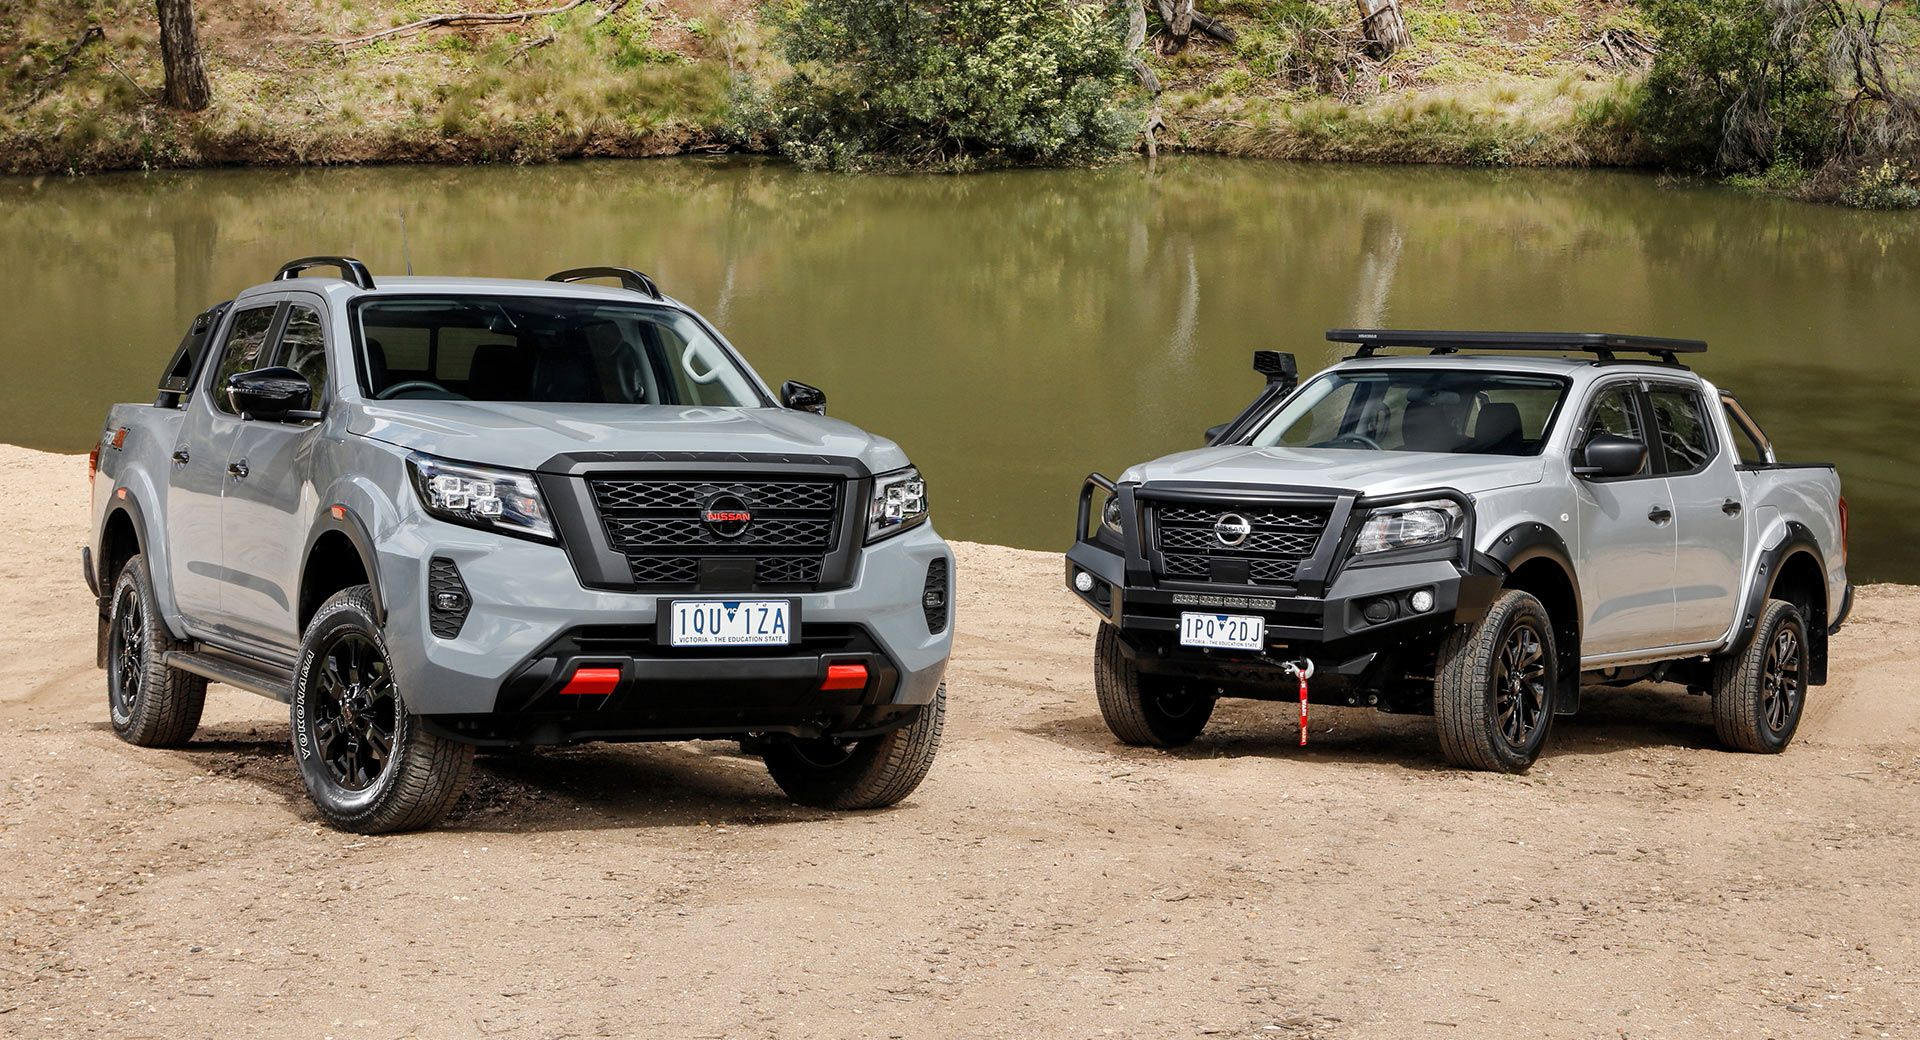 Facelifted 2021 Nissan Navara Arrives Includes New Flagship Pro 4x Variant 275 Pics Carscoops Nissan Oroch Nissan Frontier